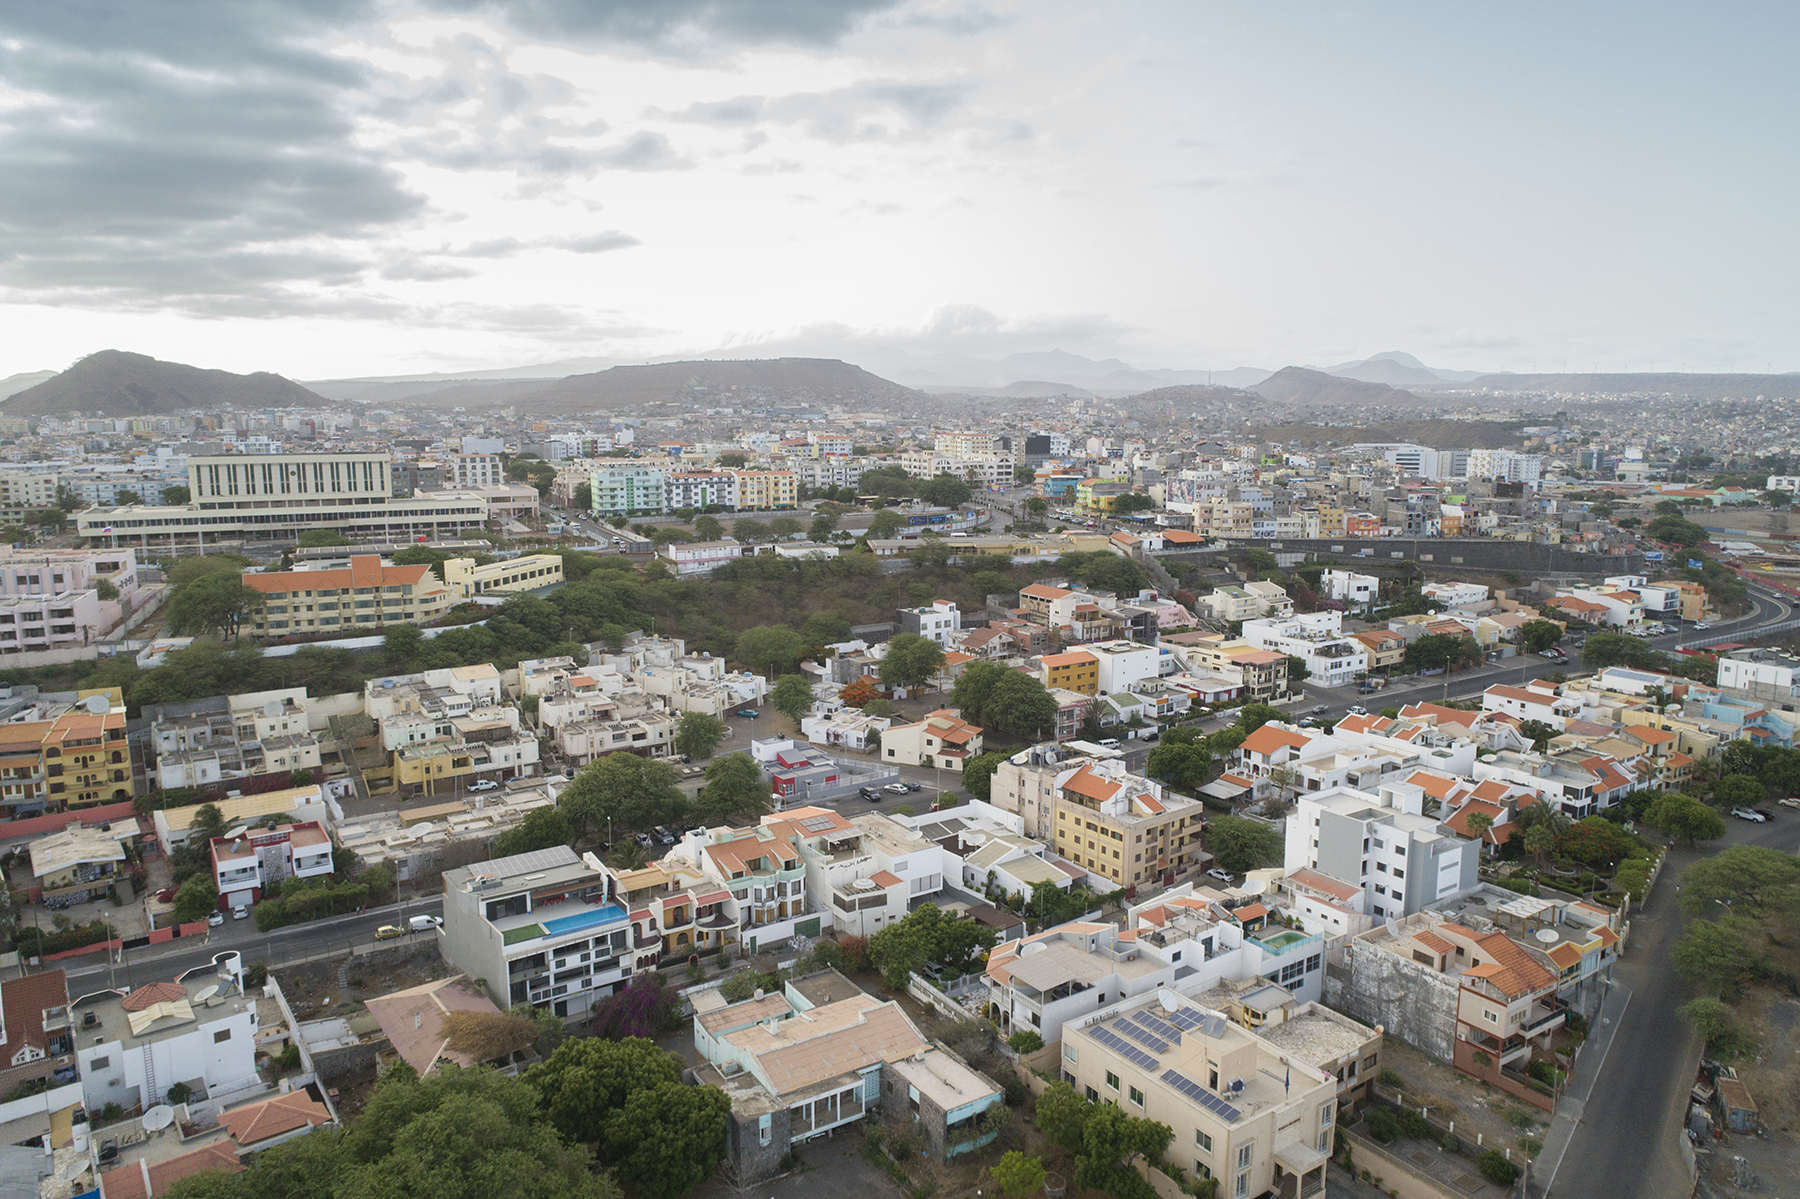 Photo of Praia, the capital of Cabo Verde.